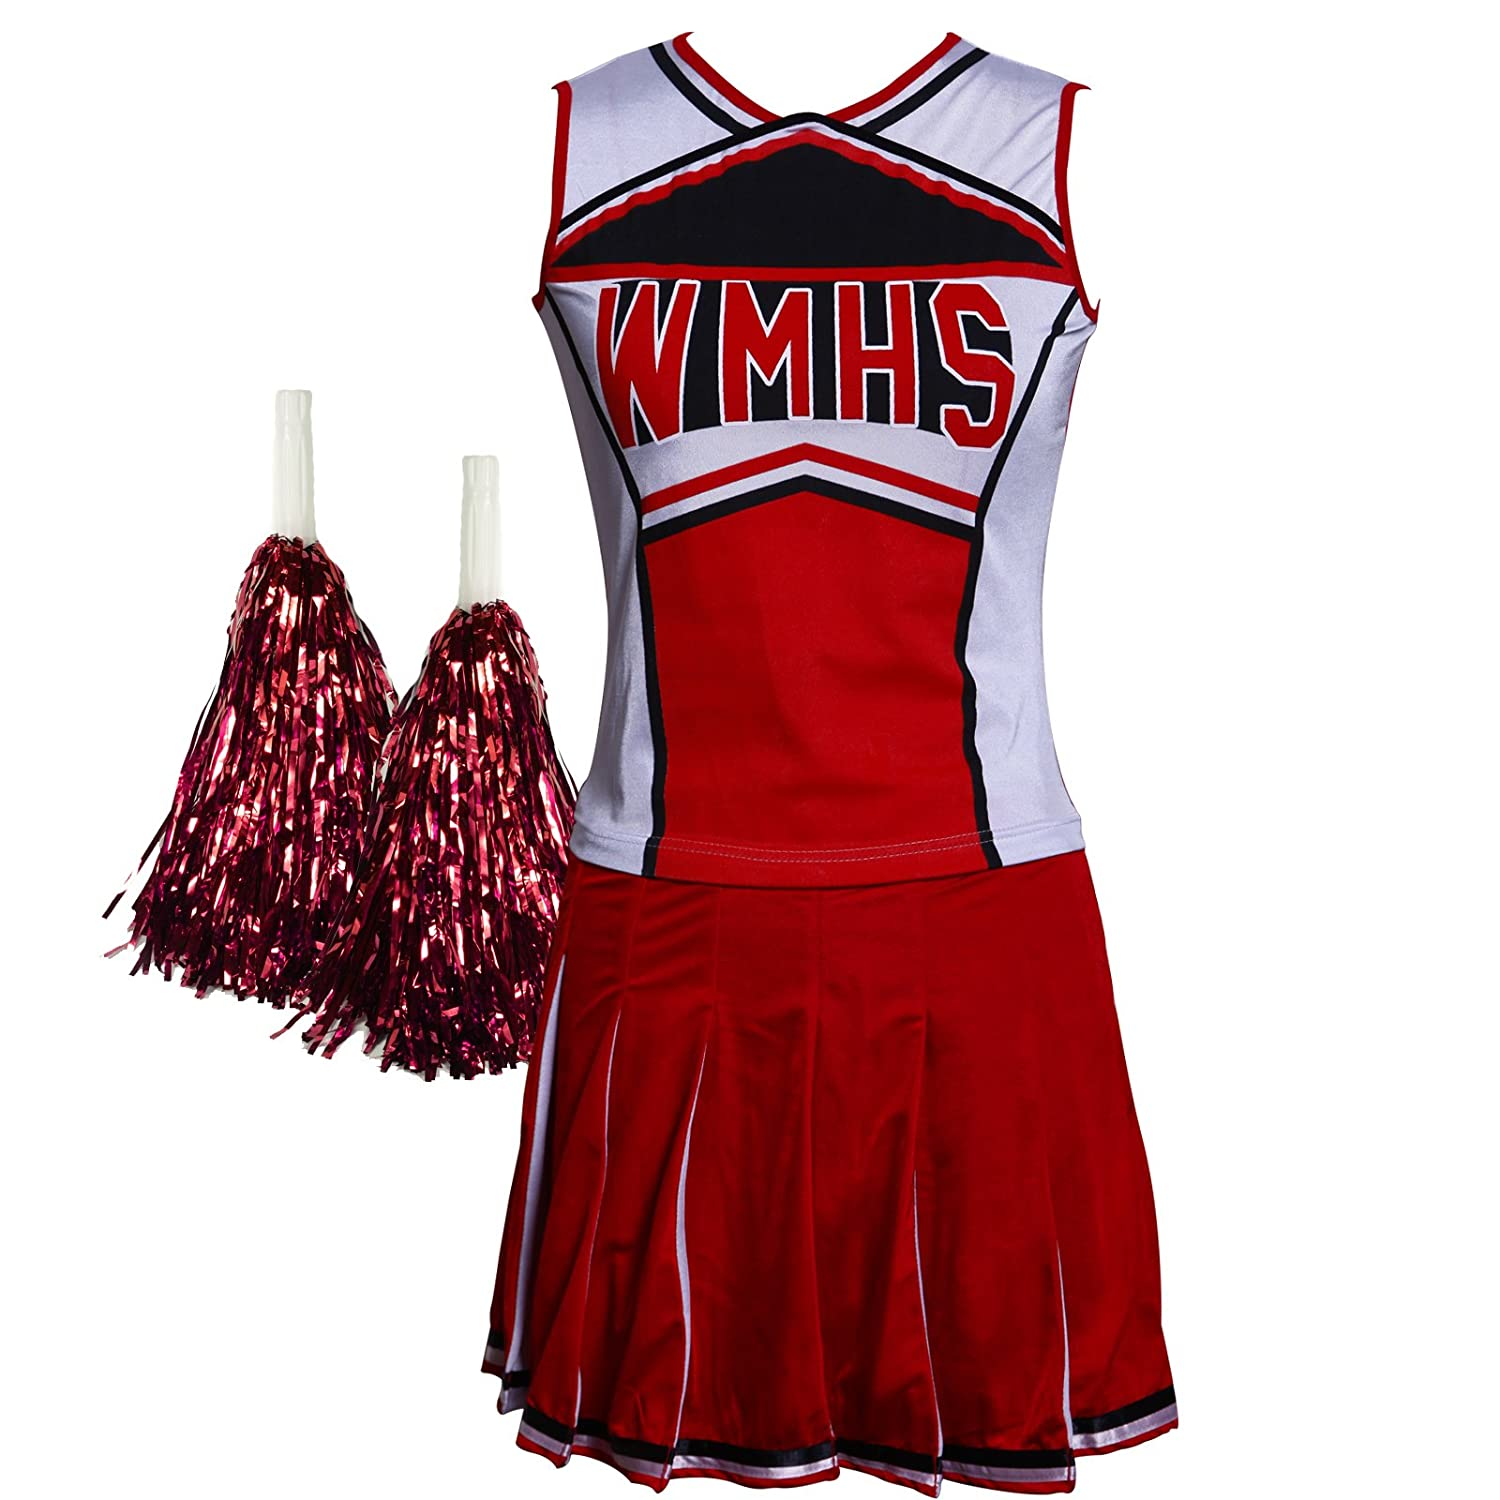 Vestito da chearleader, Glee Style High School Musical, outfit con pompon Damentraum UK_CAS0491 CAS049224